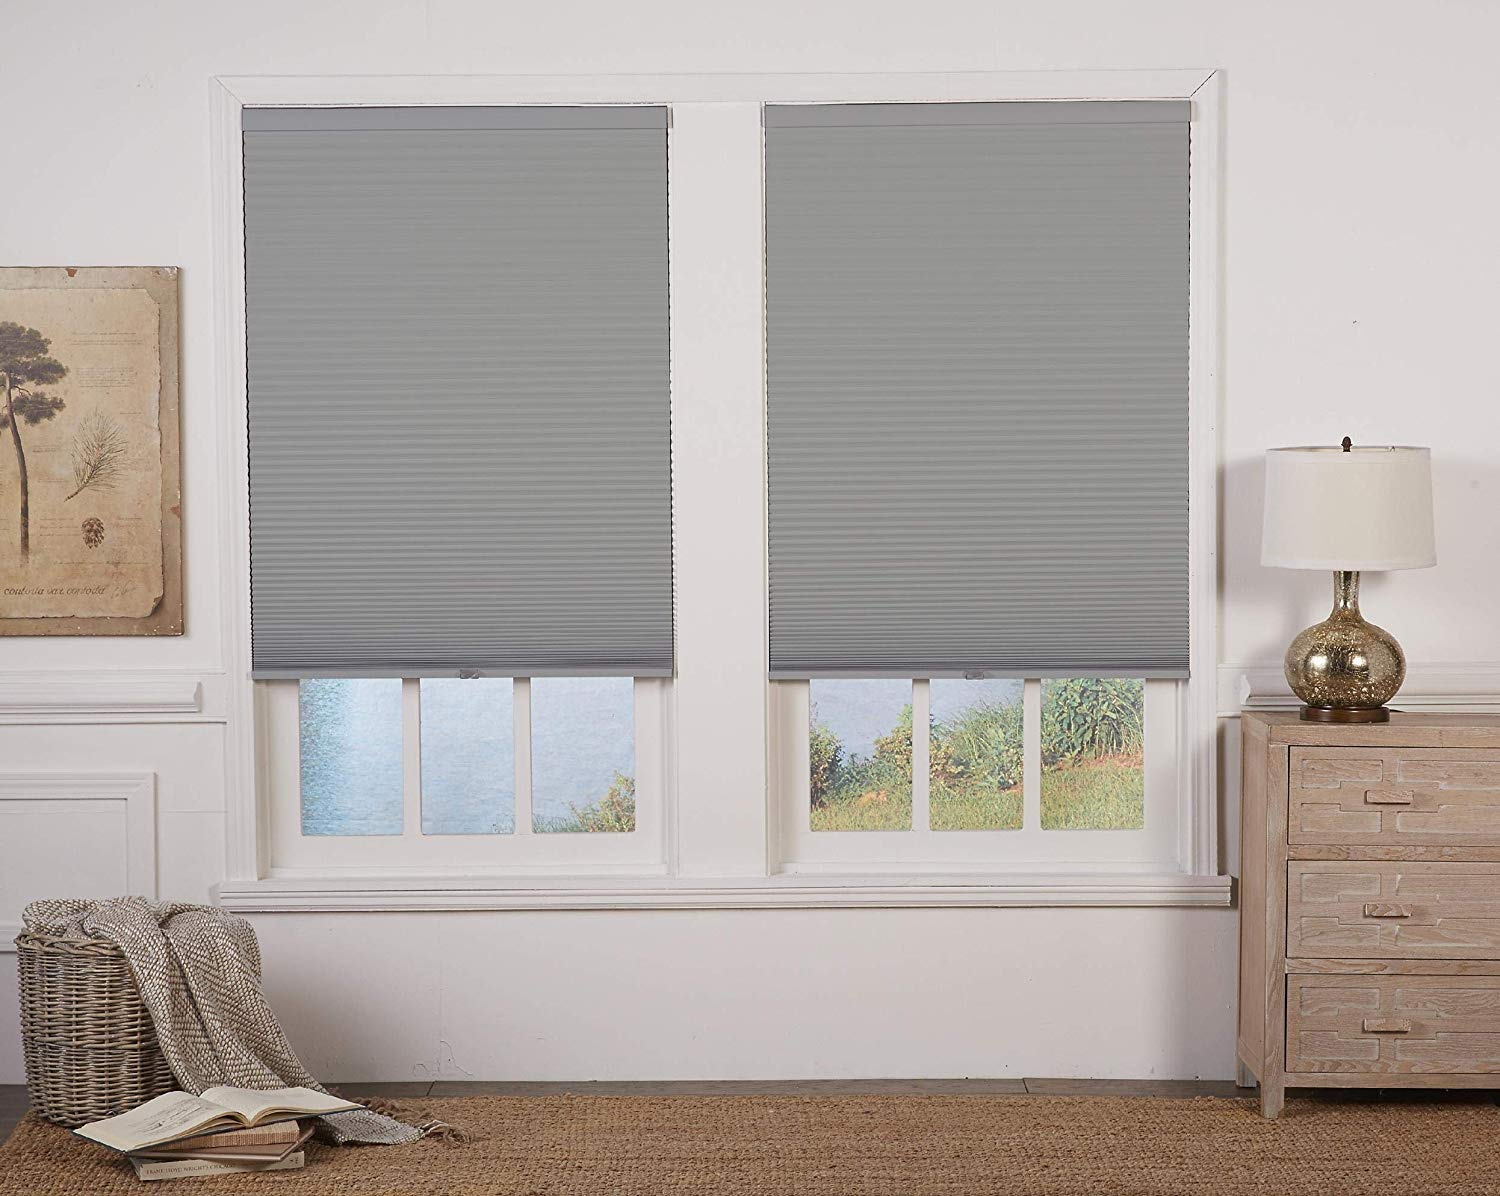 DEZ Furnishings QEGRWT564480 Cordless Blackout Cellular Shade 56.5W x 48H Inches Anchor Gray